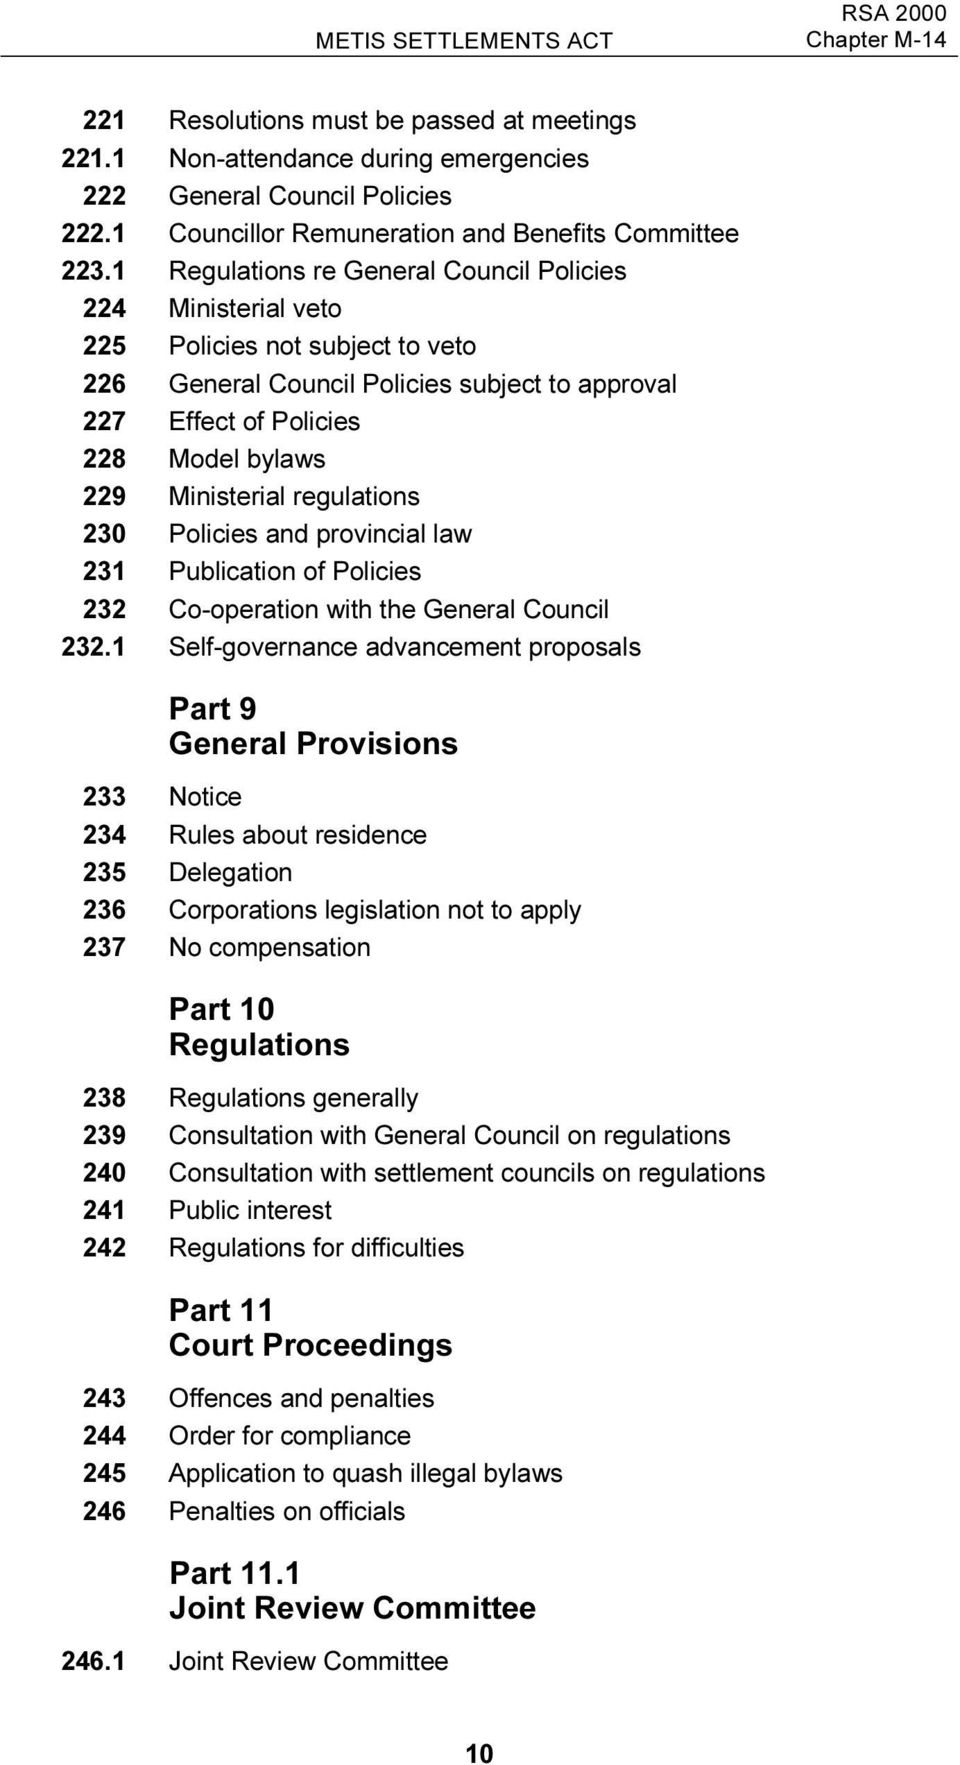 Ministerial regulations 230 Policies and provincial law 231 Publication of Policies 232 Co-operation with the General Council 232.